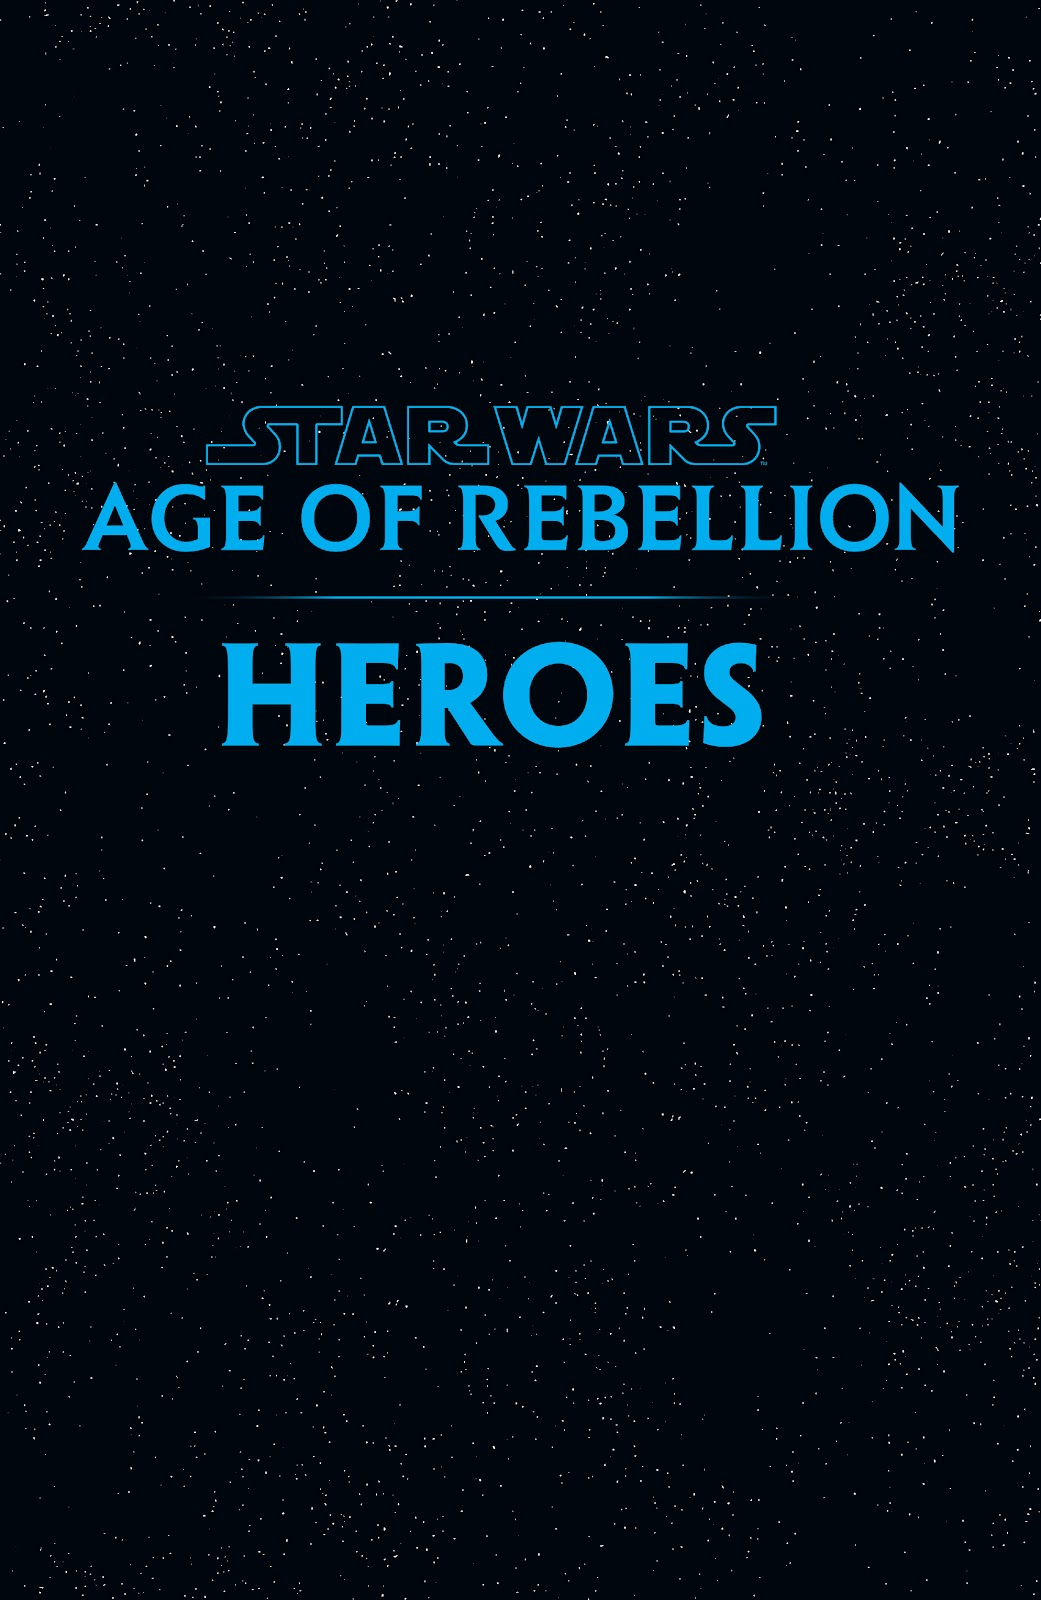 Read online Star Wars: Age of Rebellion - Heroes comic -  Issue # TPB - 2